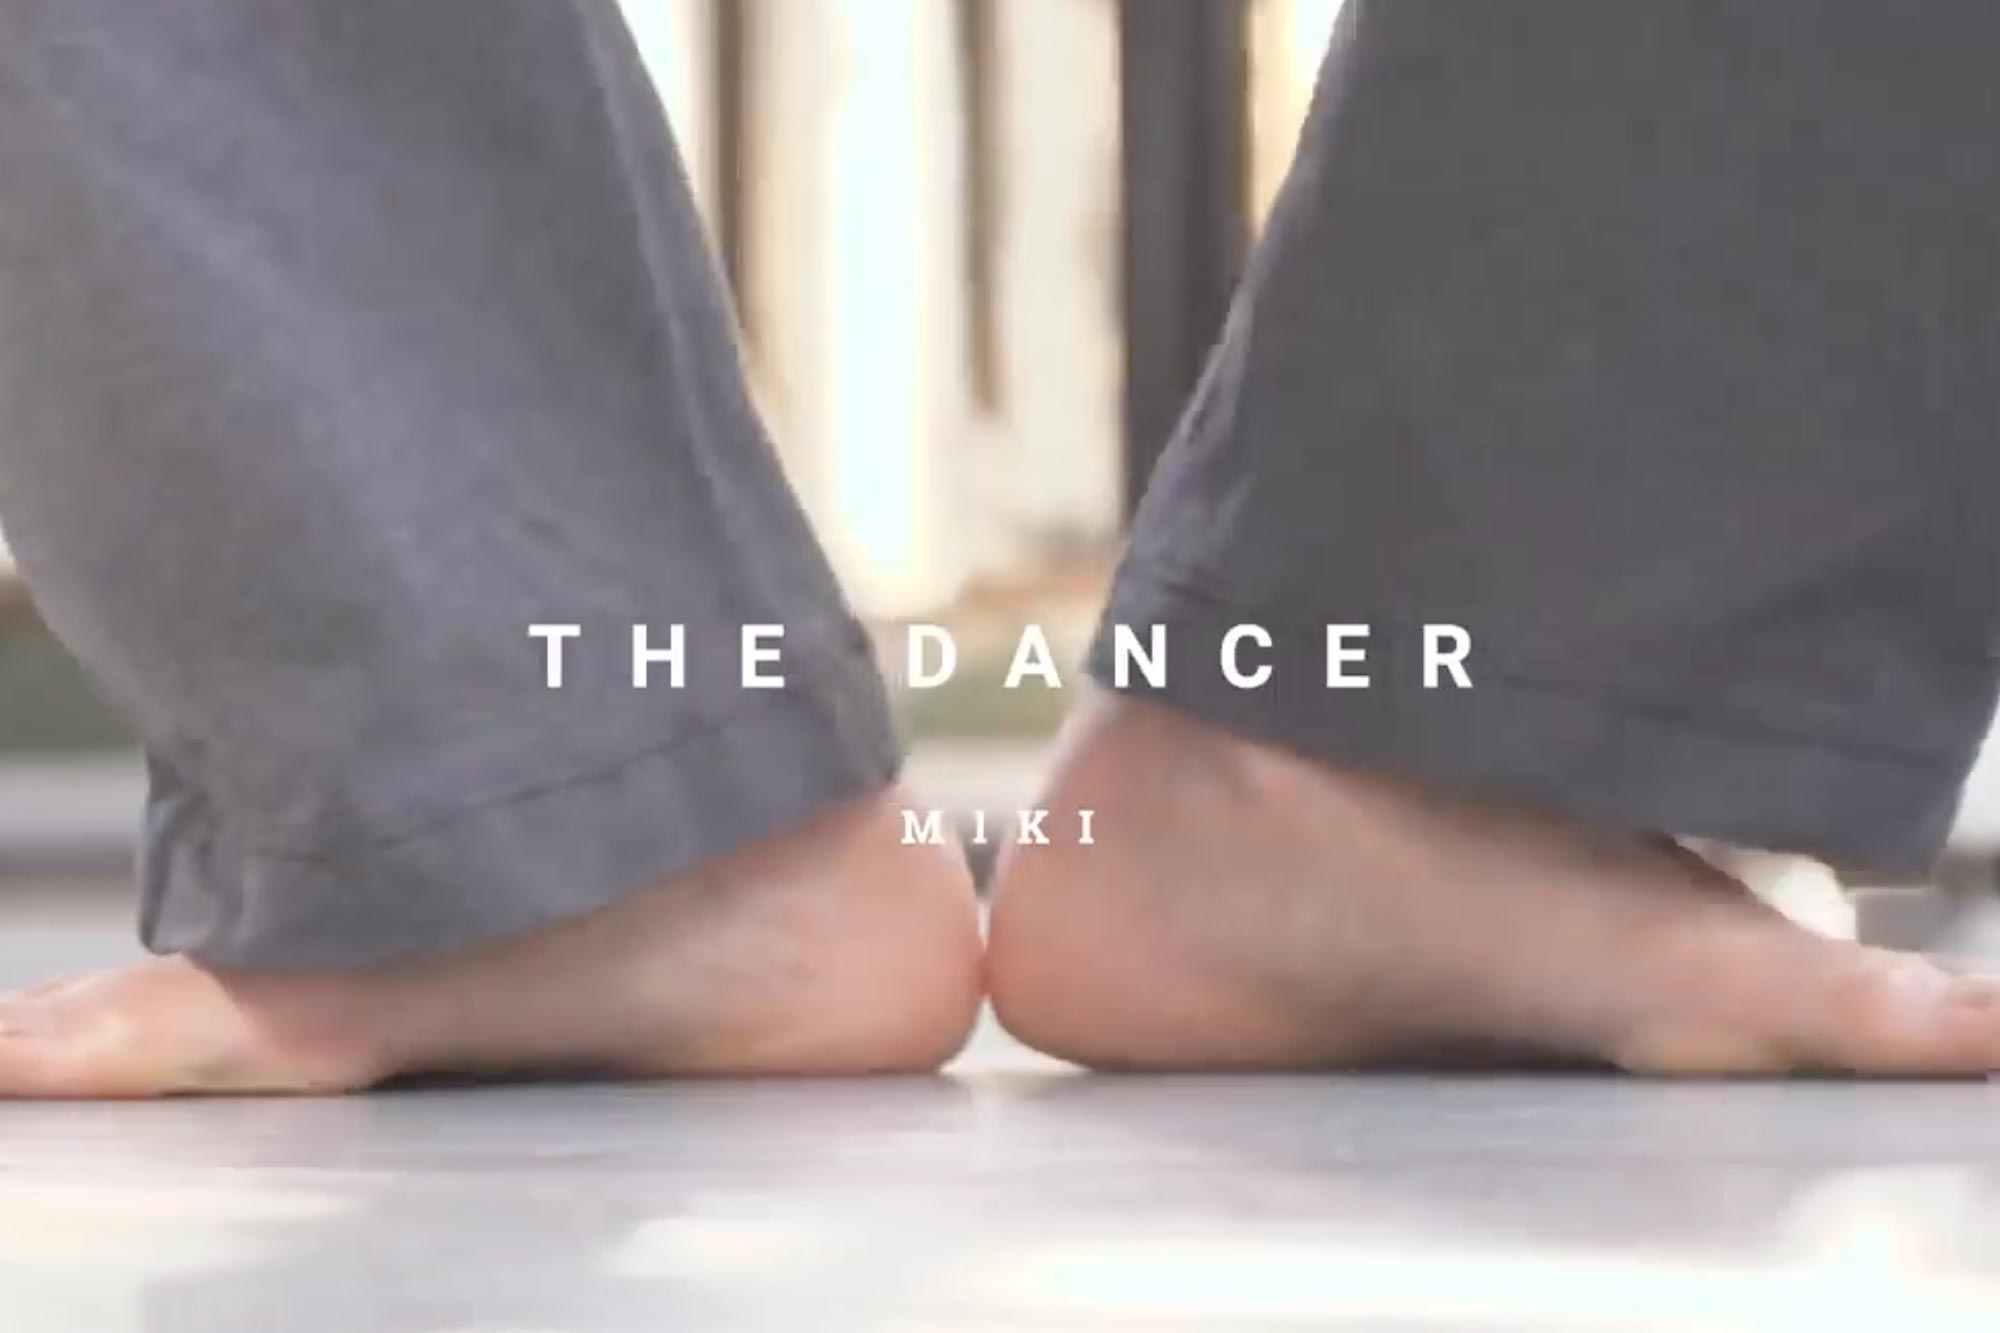 Brighthouse Financial — The Dancer